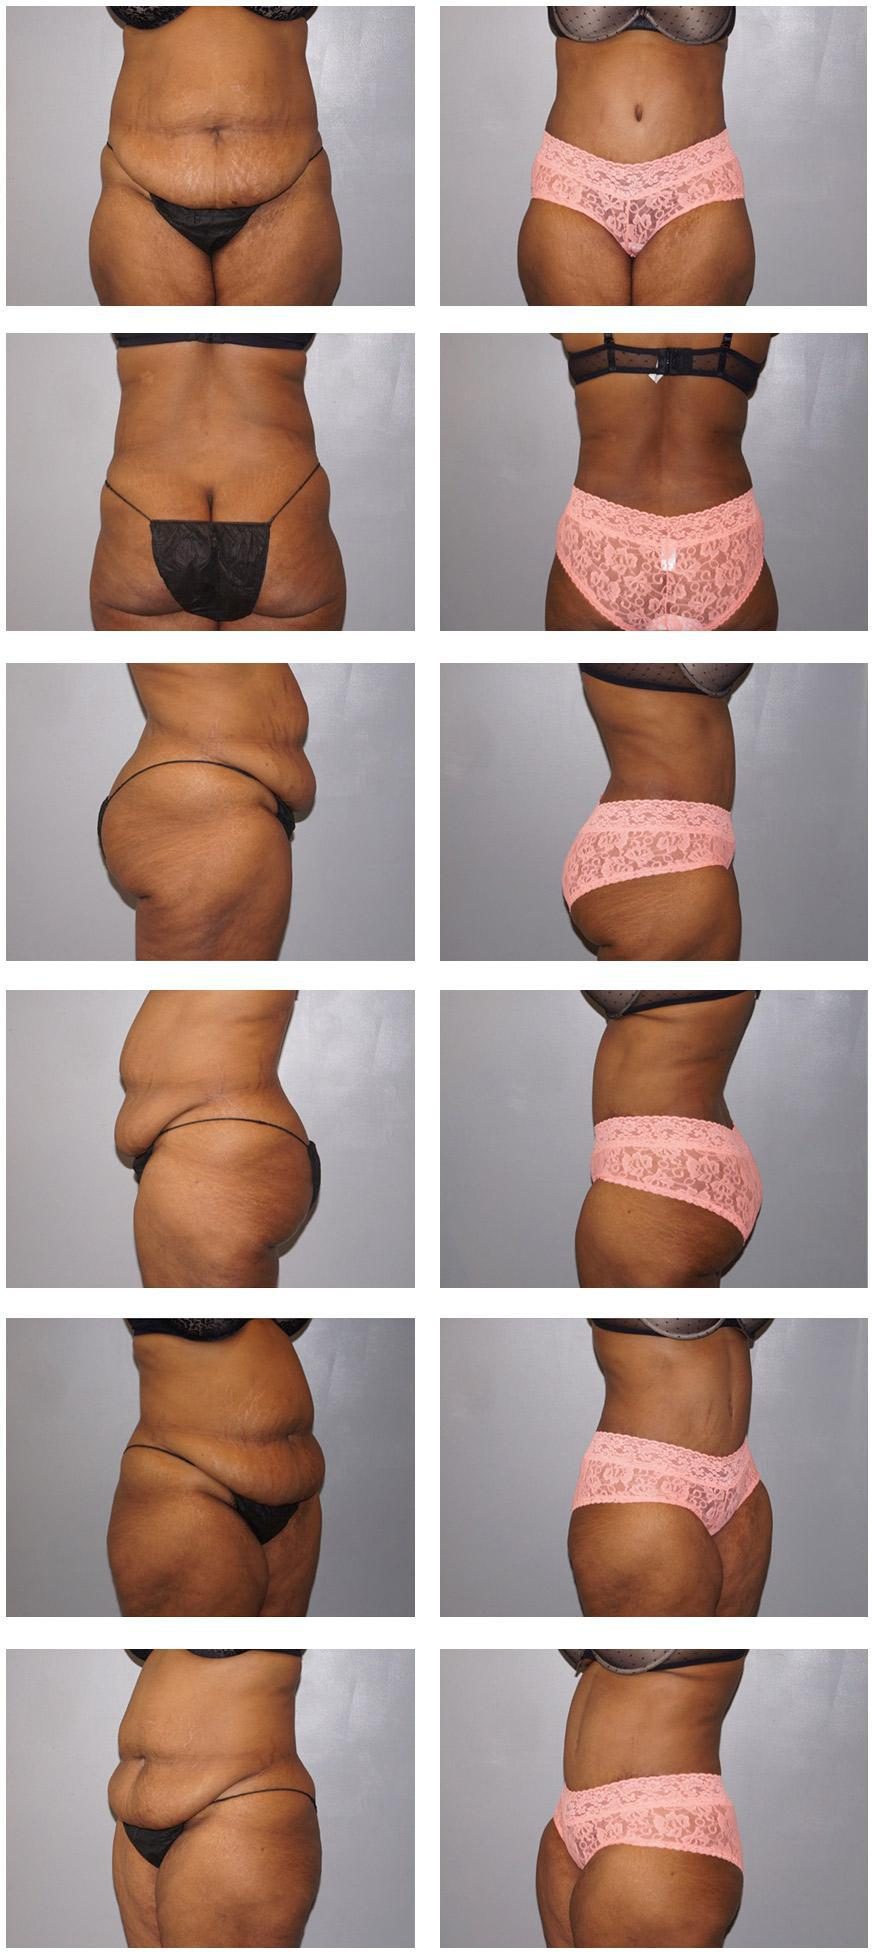 Tummy Tuck Before and After - Charlotte, NC: Providence Plastic Surgery